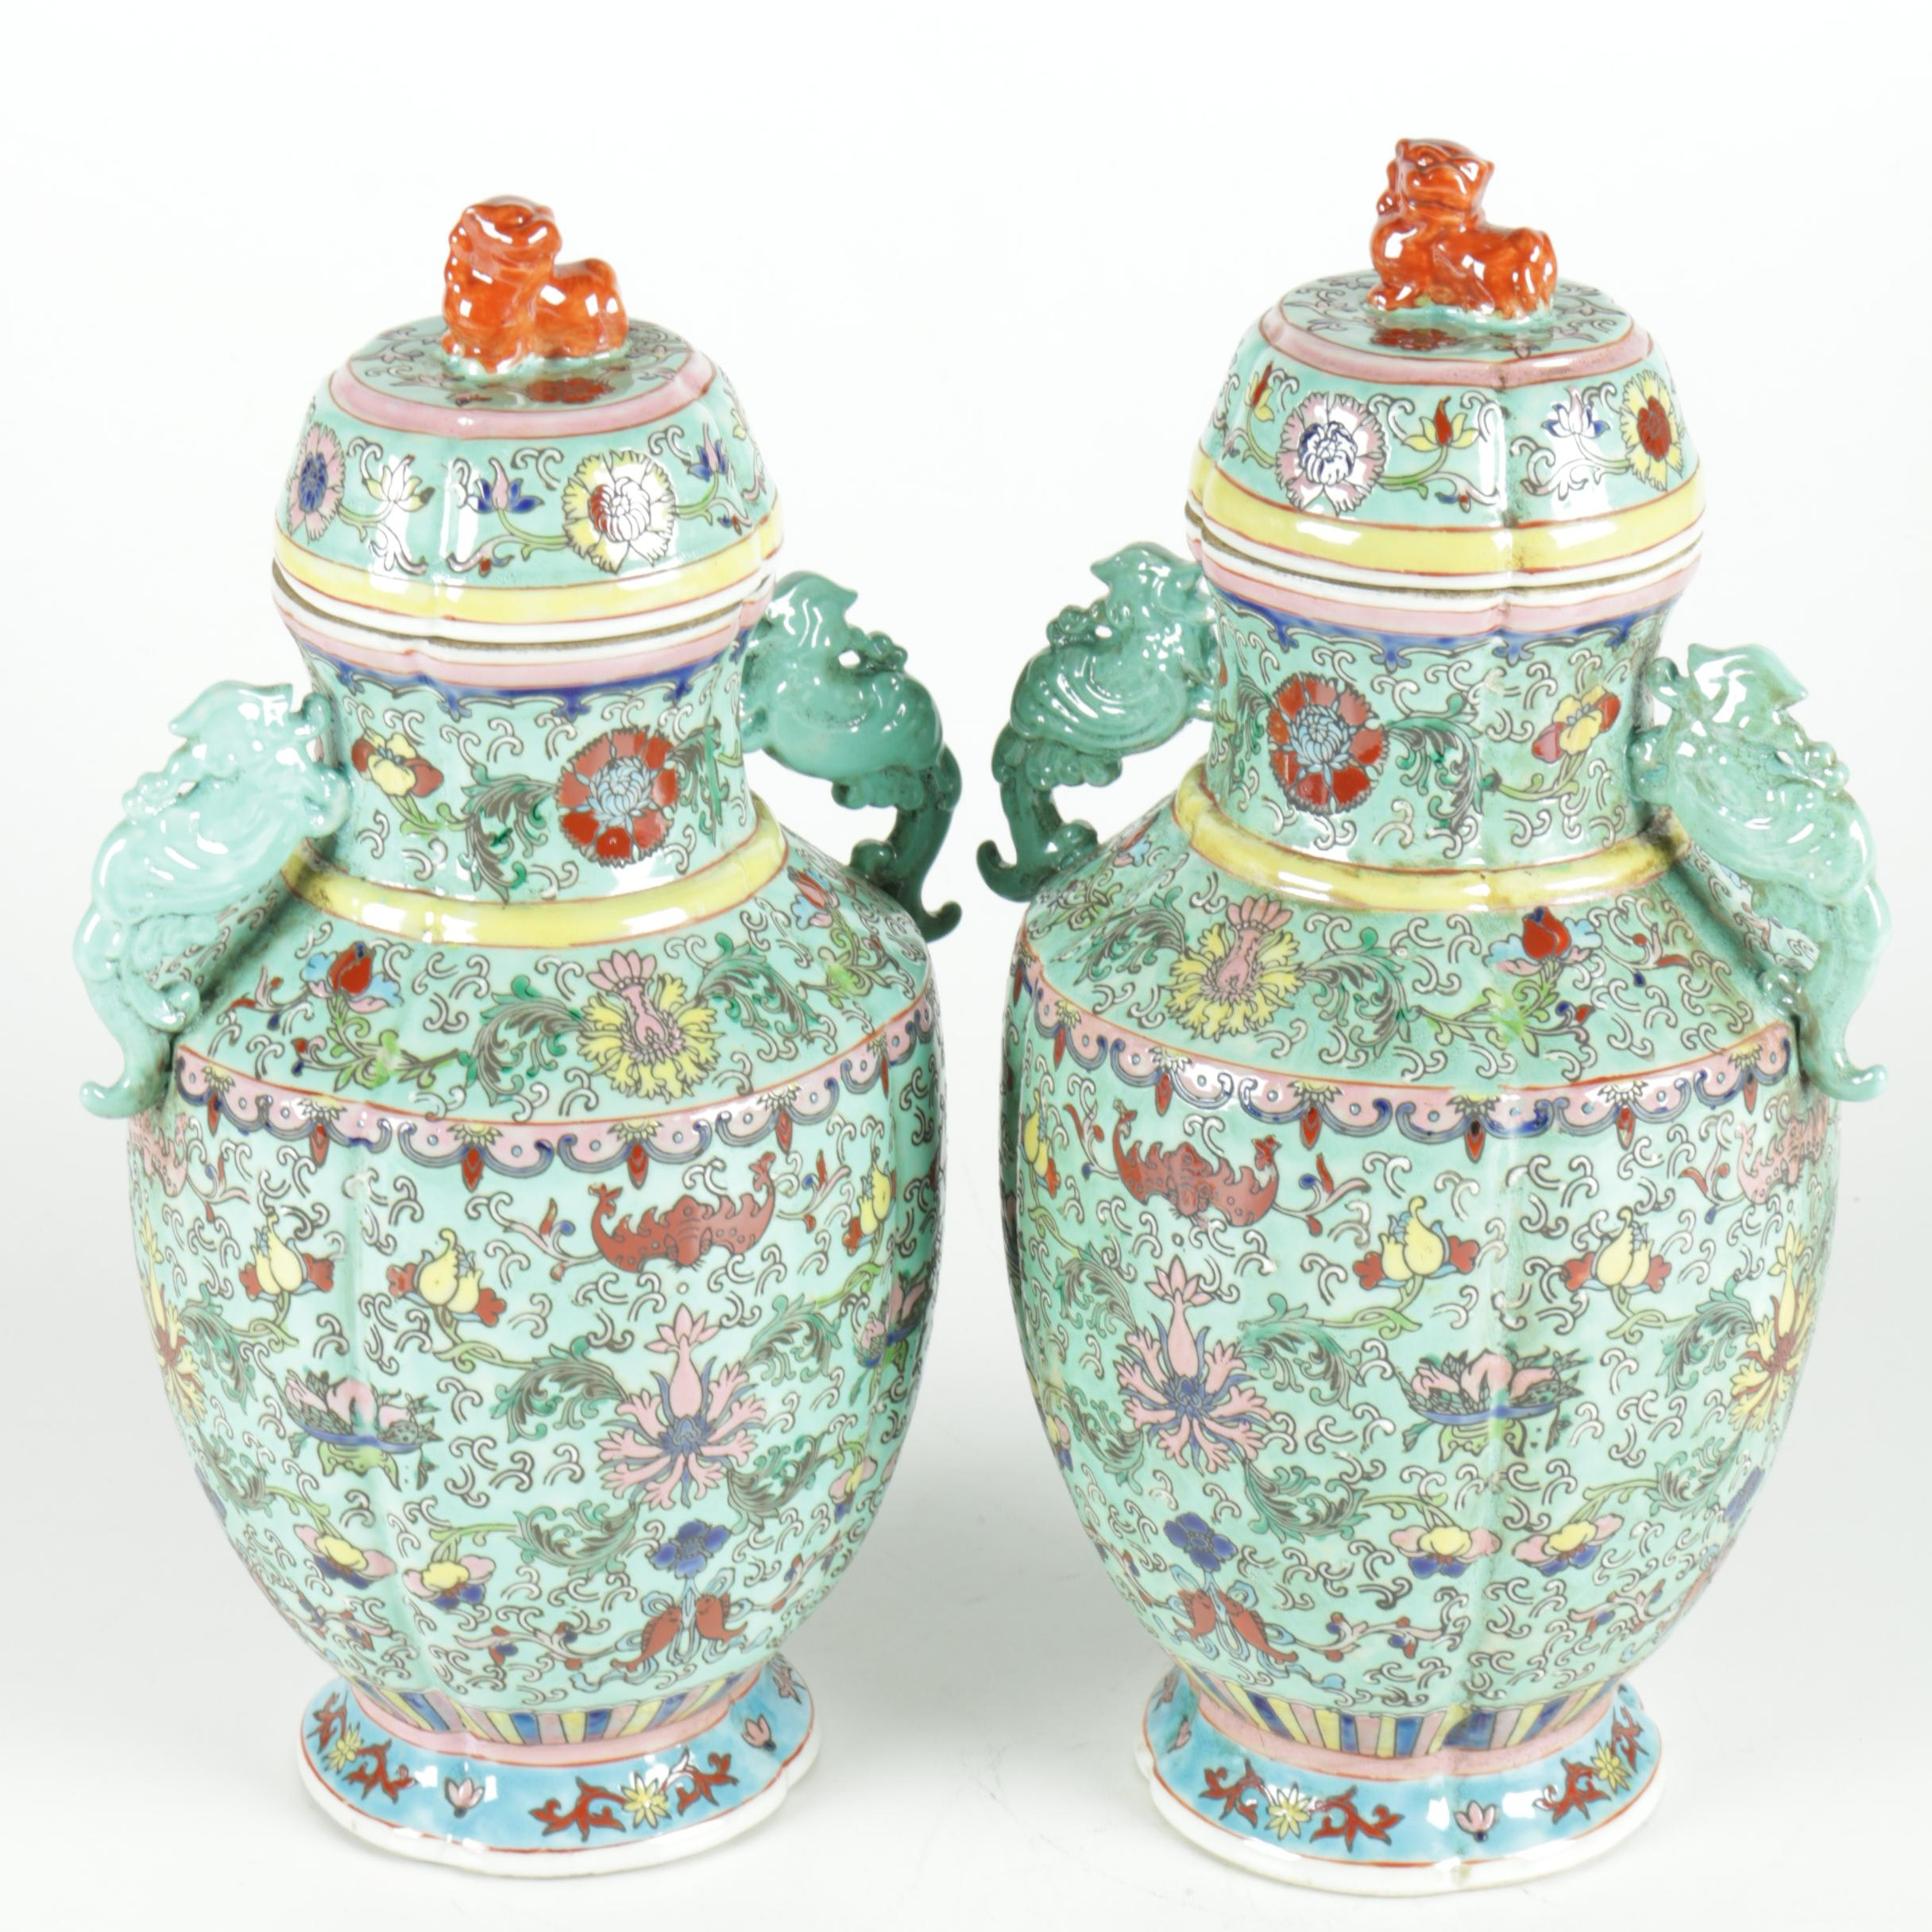 Pair of Famille Verte Jars With Guardian Lions Finials